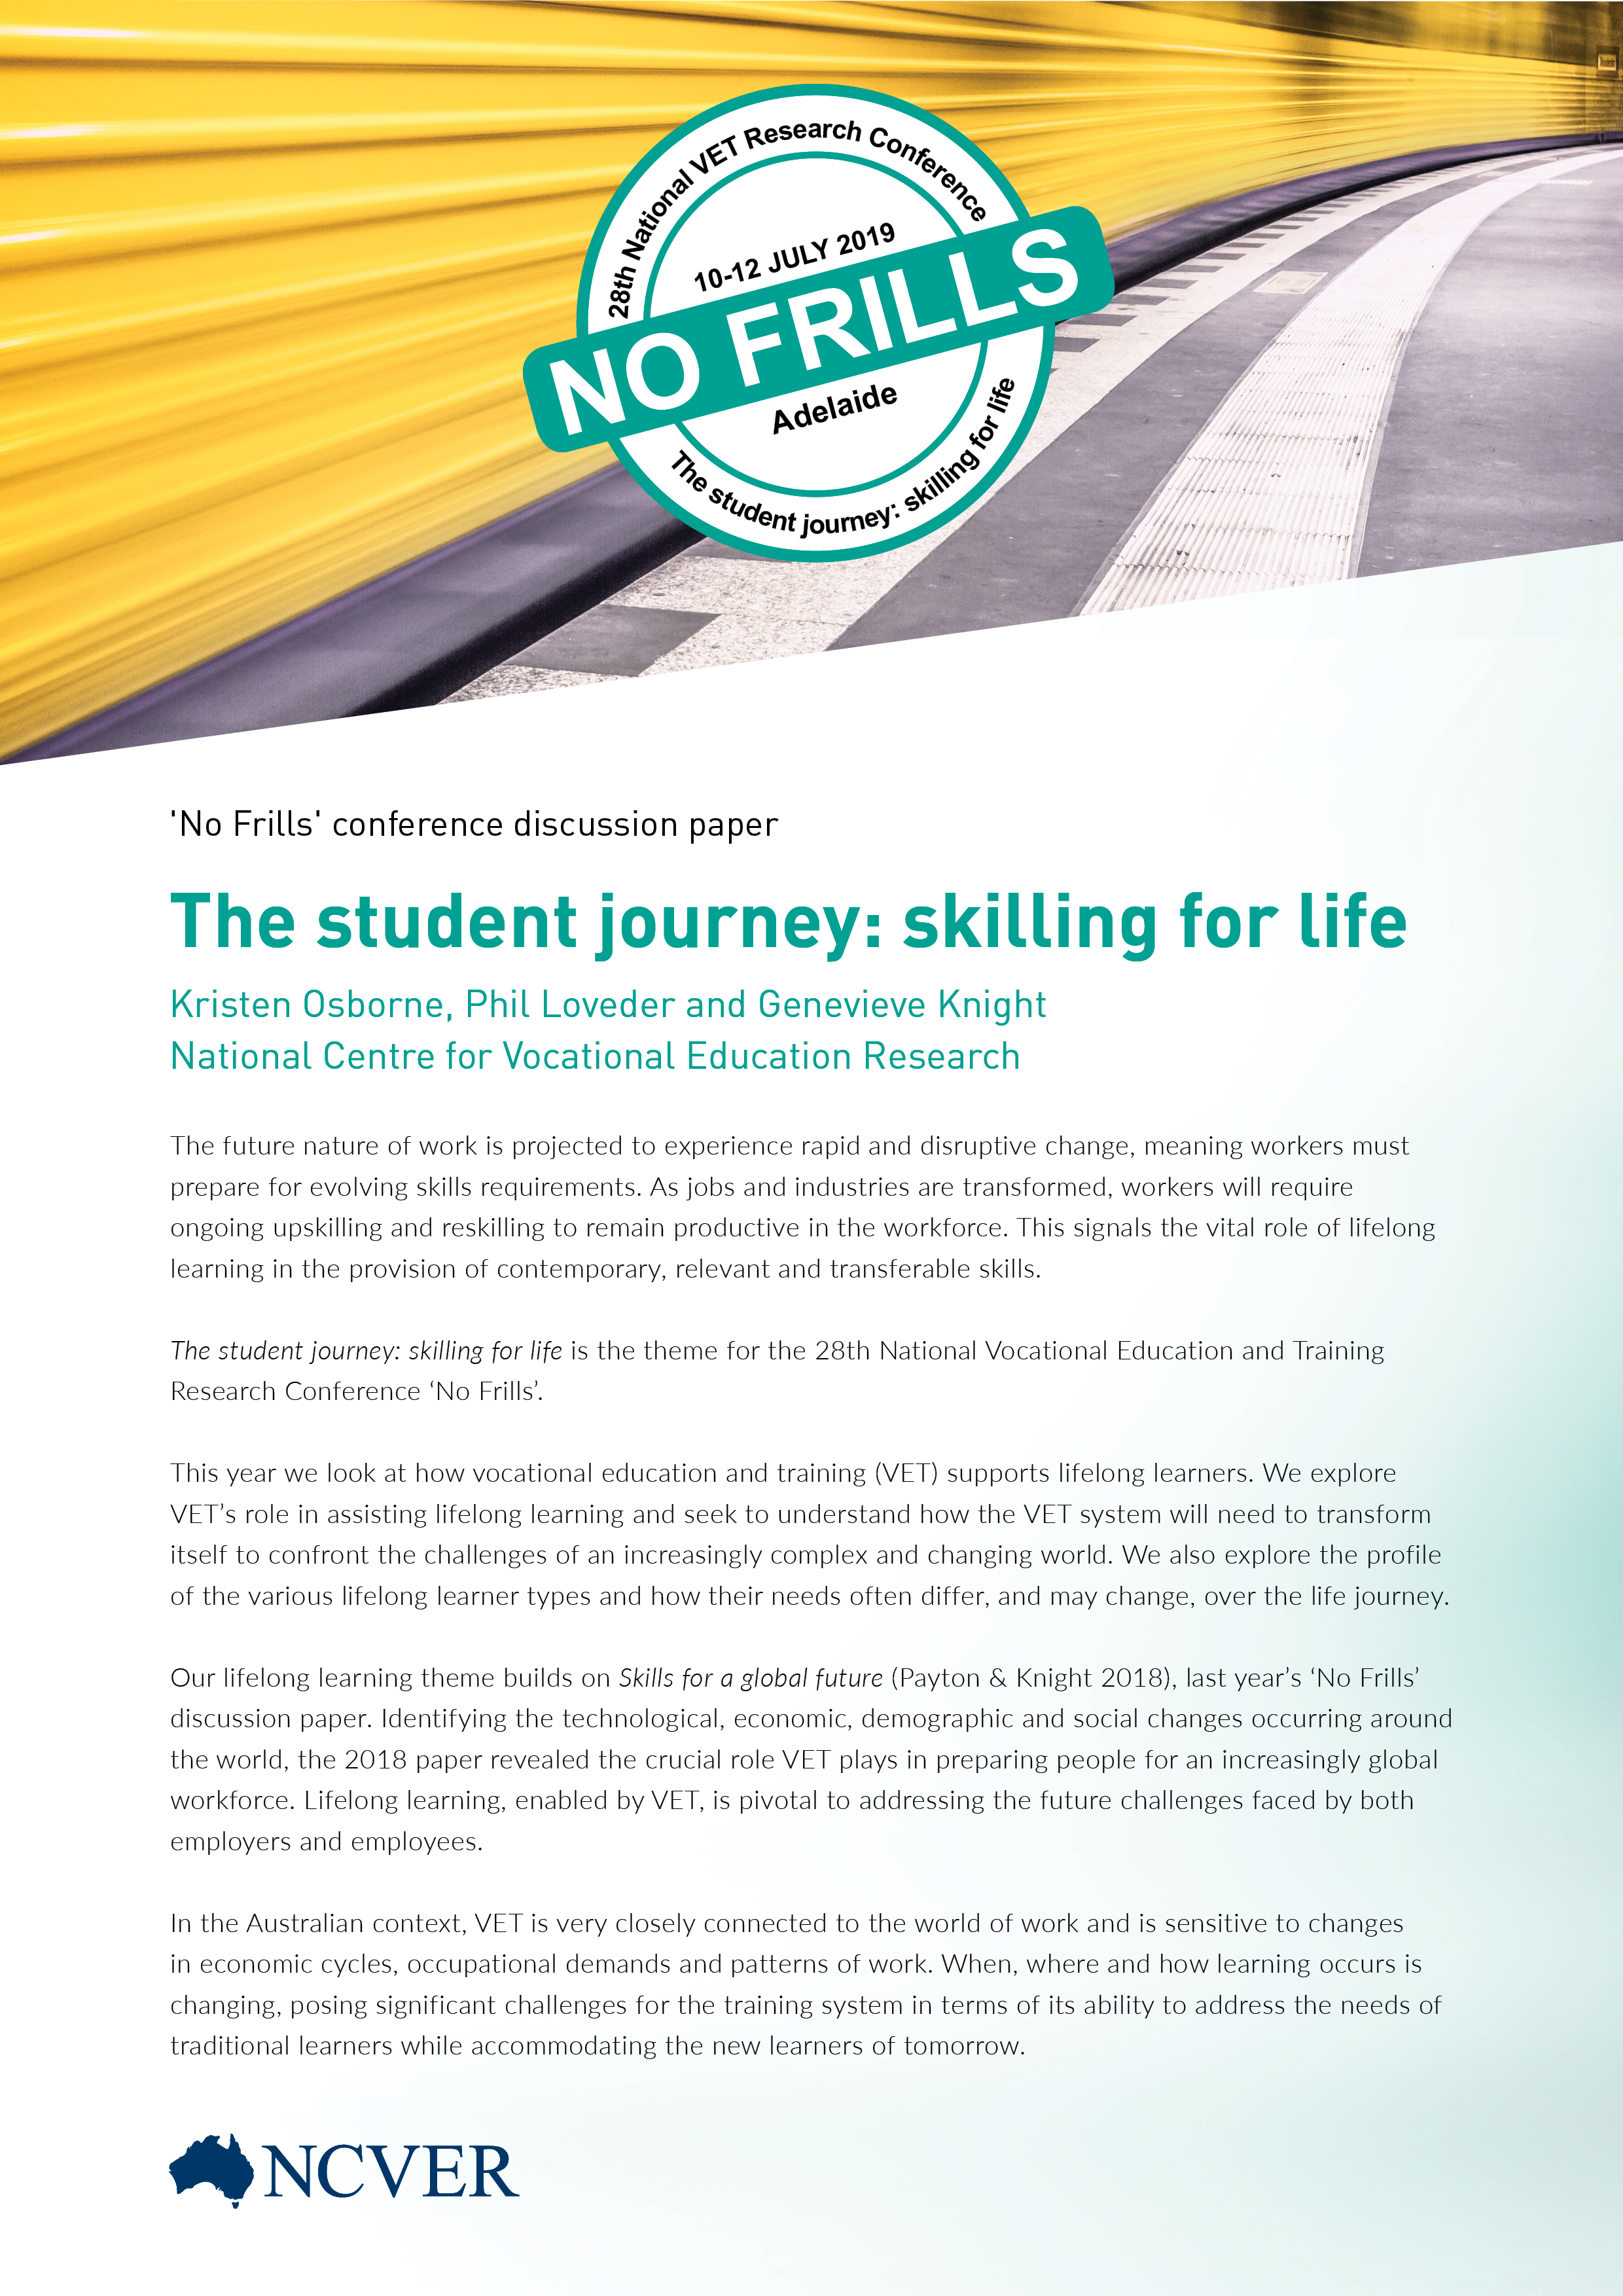 The student journey: skilling for life